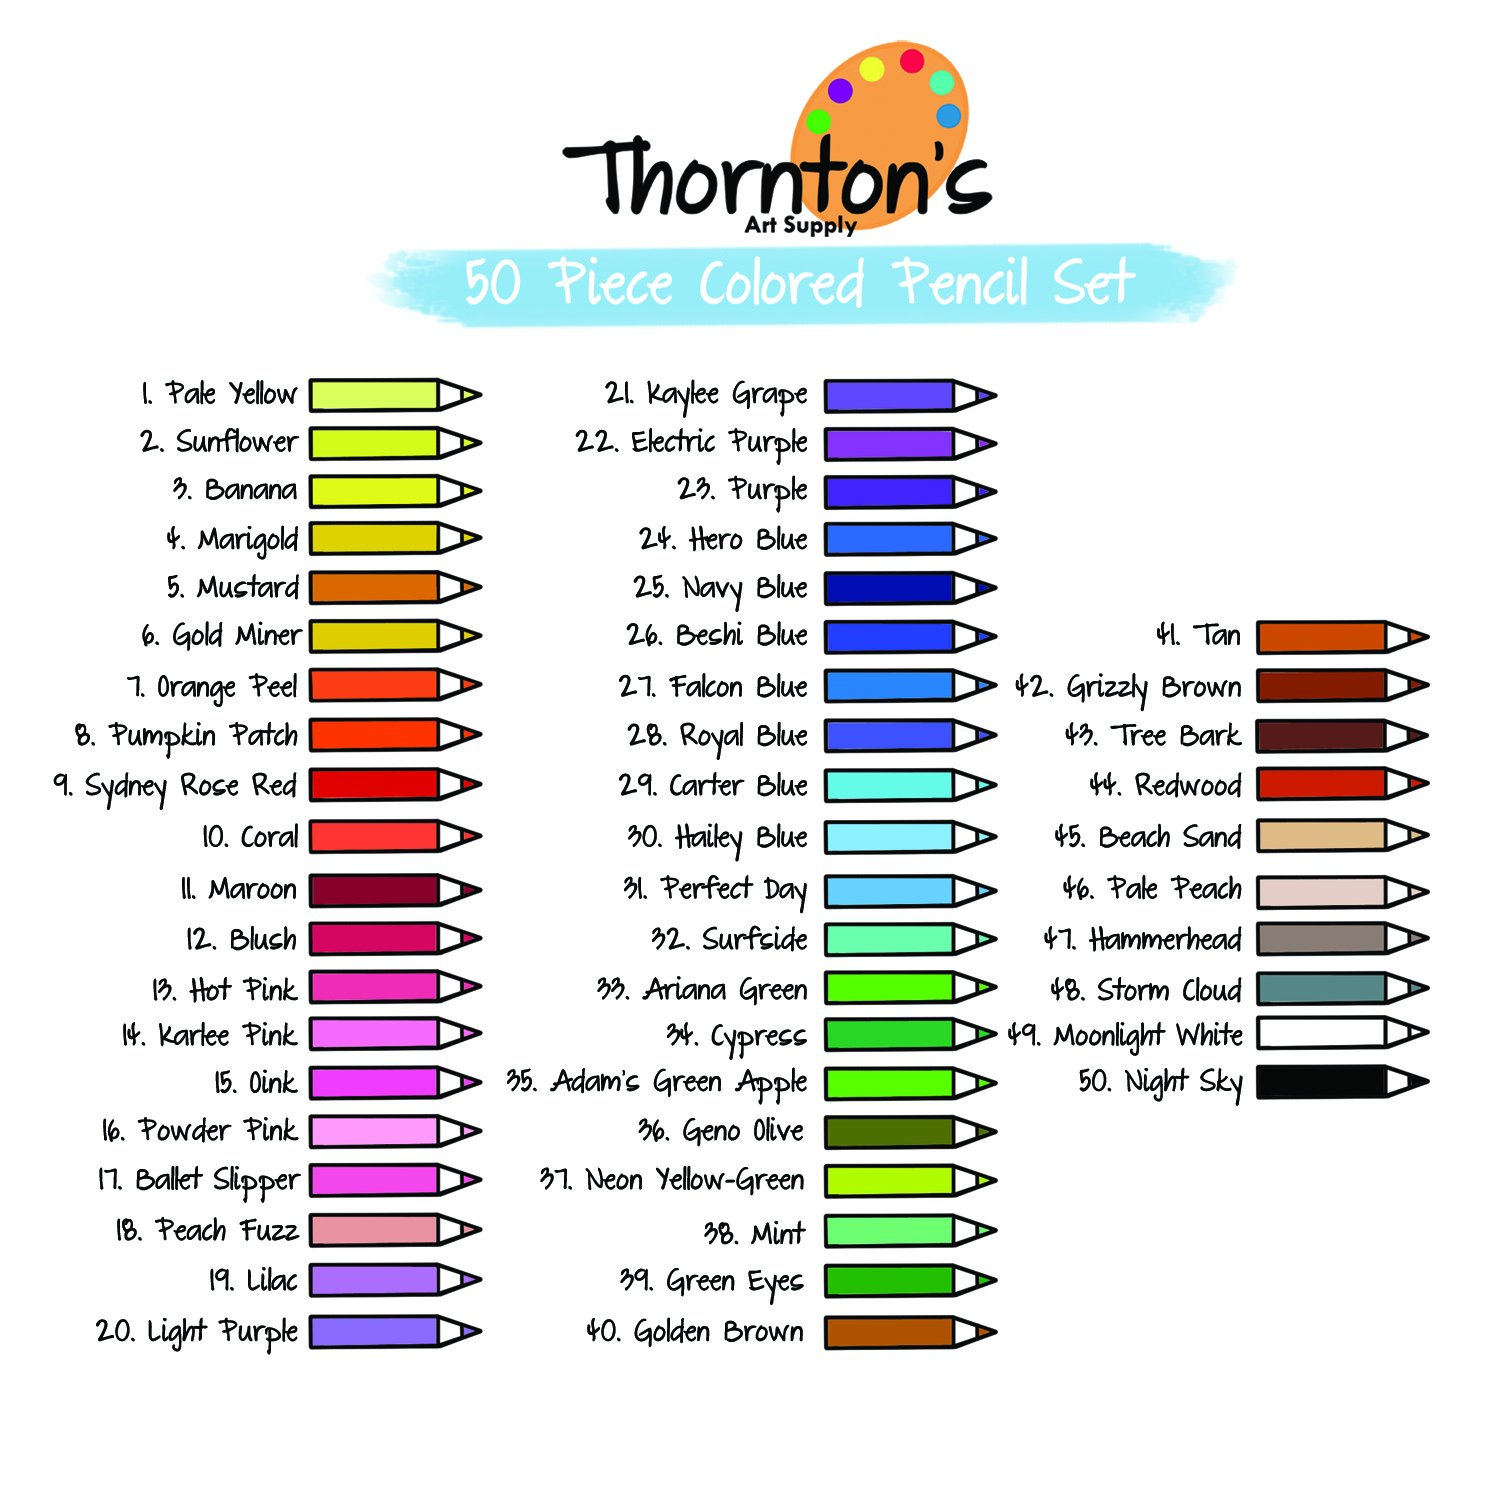 Amazon thorntons art supply soft core 50 piece artist grade amazon thorntons art supply soft core 50 piece artist grade colored pencil adult coloring set assorted colors office products nvjuhfo Choice Image